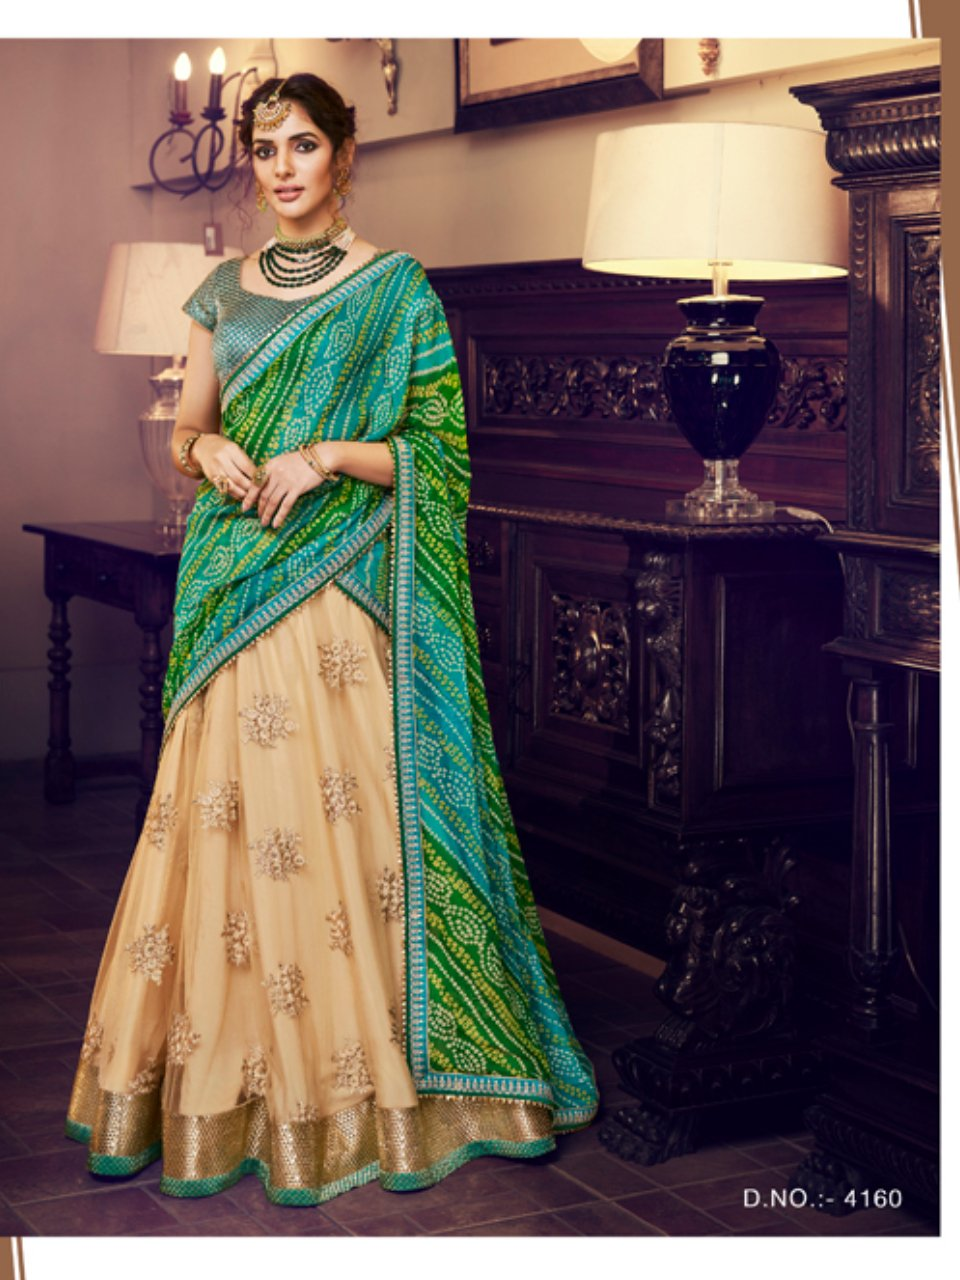 Nakkashi NAK4160 Bridal Beige Net Green Georgette Silk Bandhani Lehenga Choli - Fashion Nation